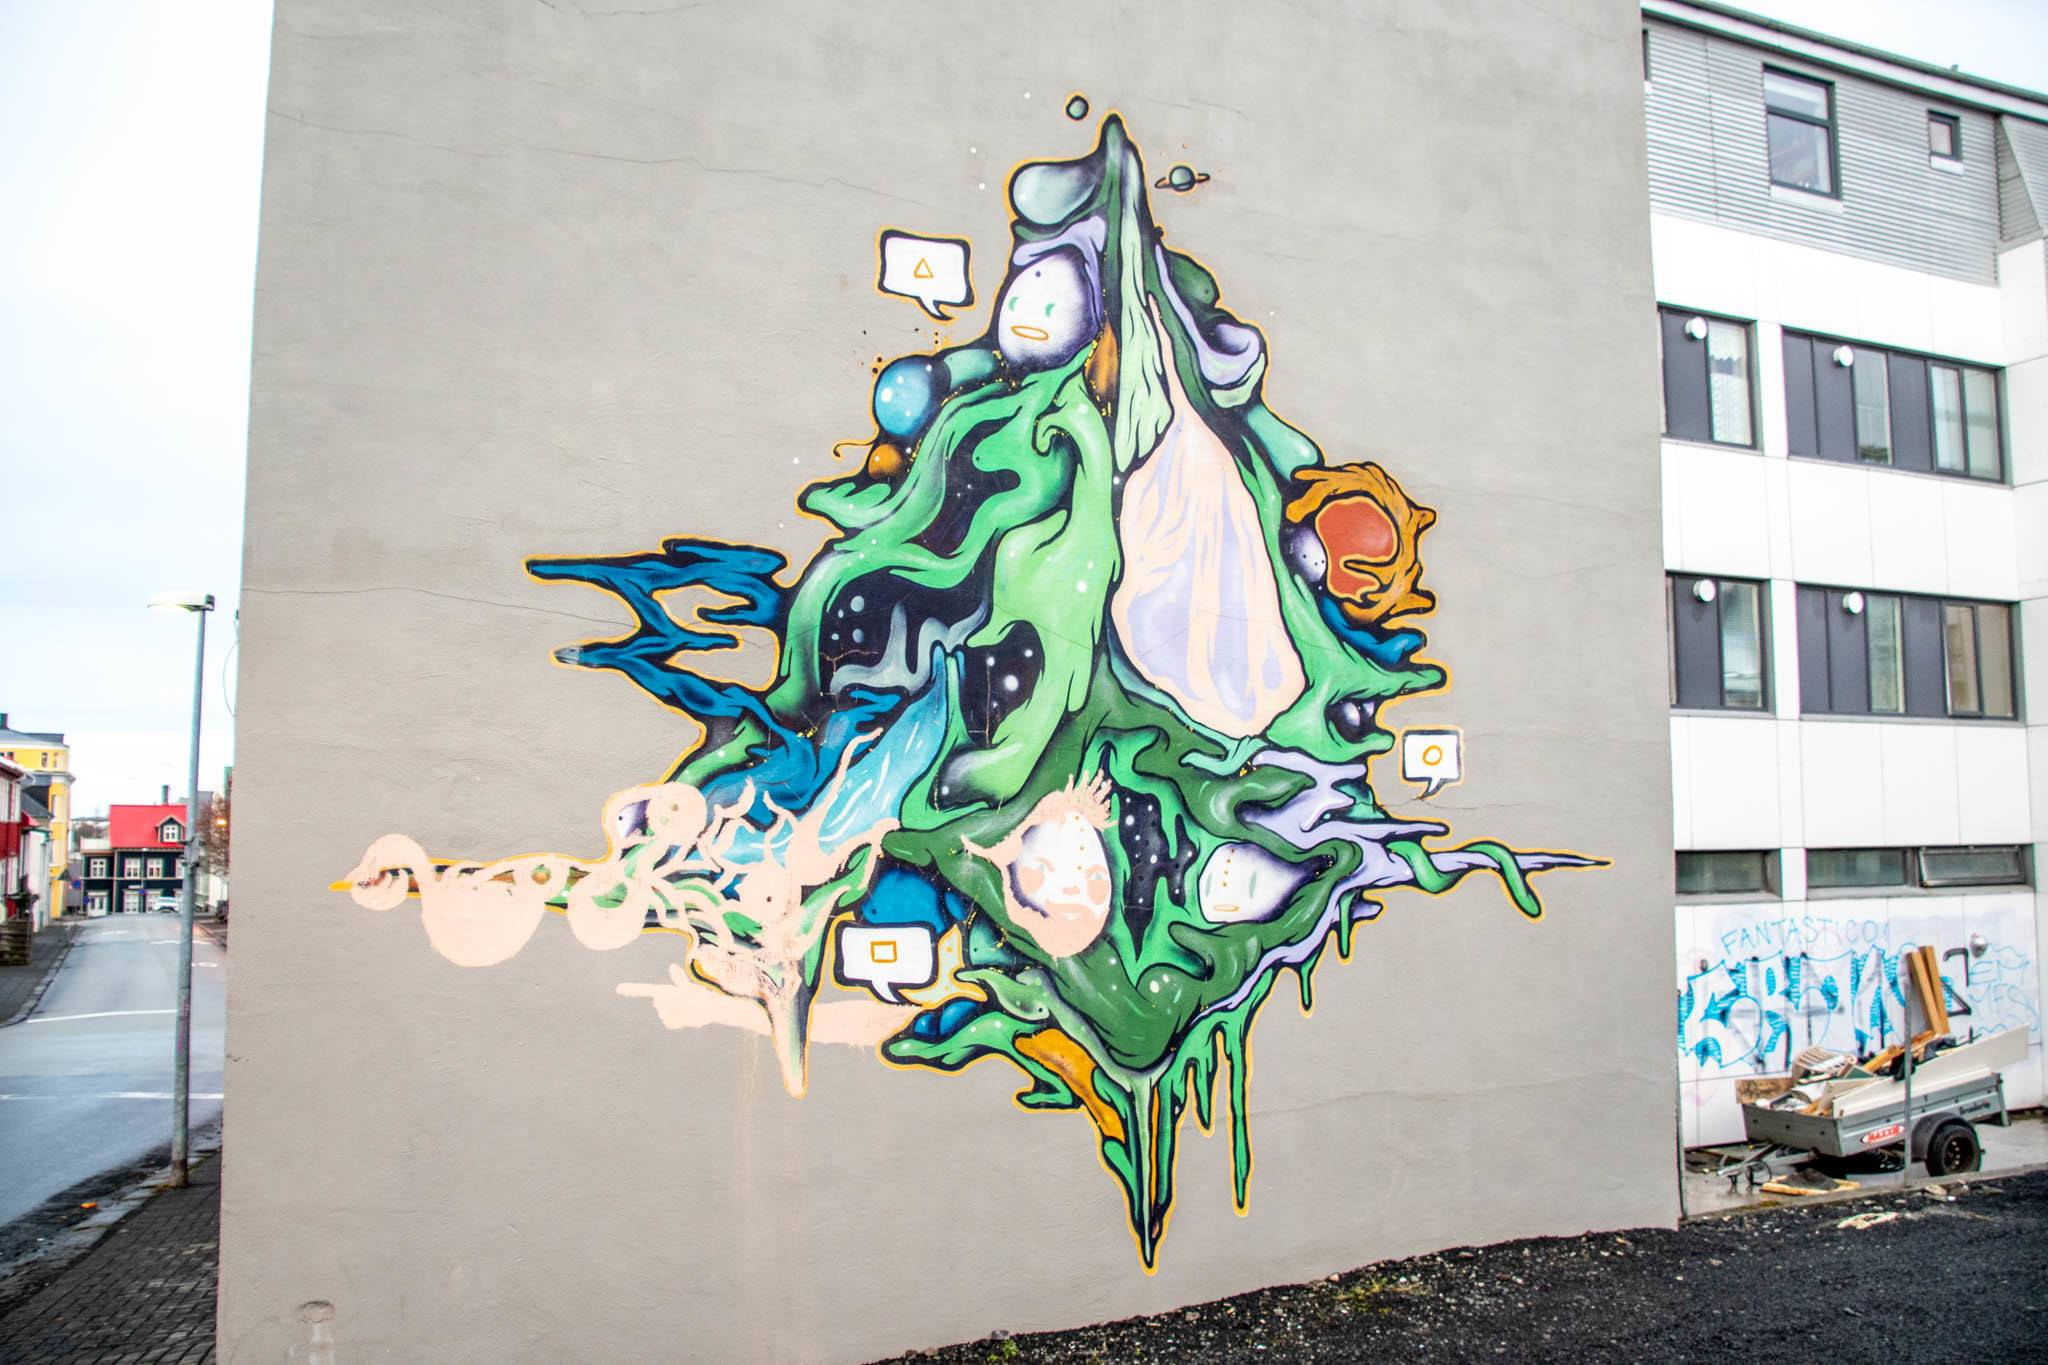 Some street art murals are unusual and indescribable